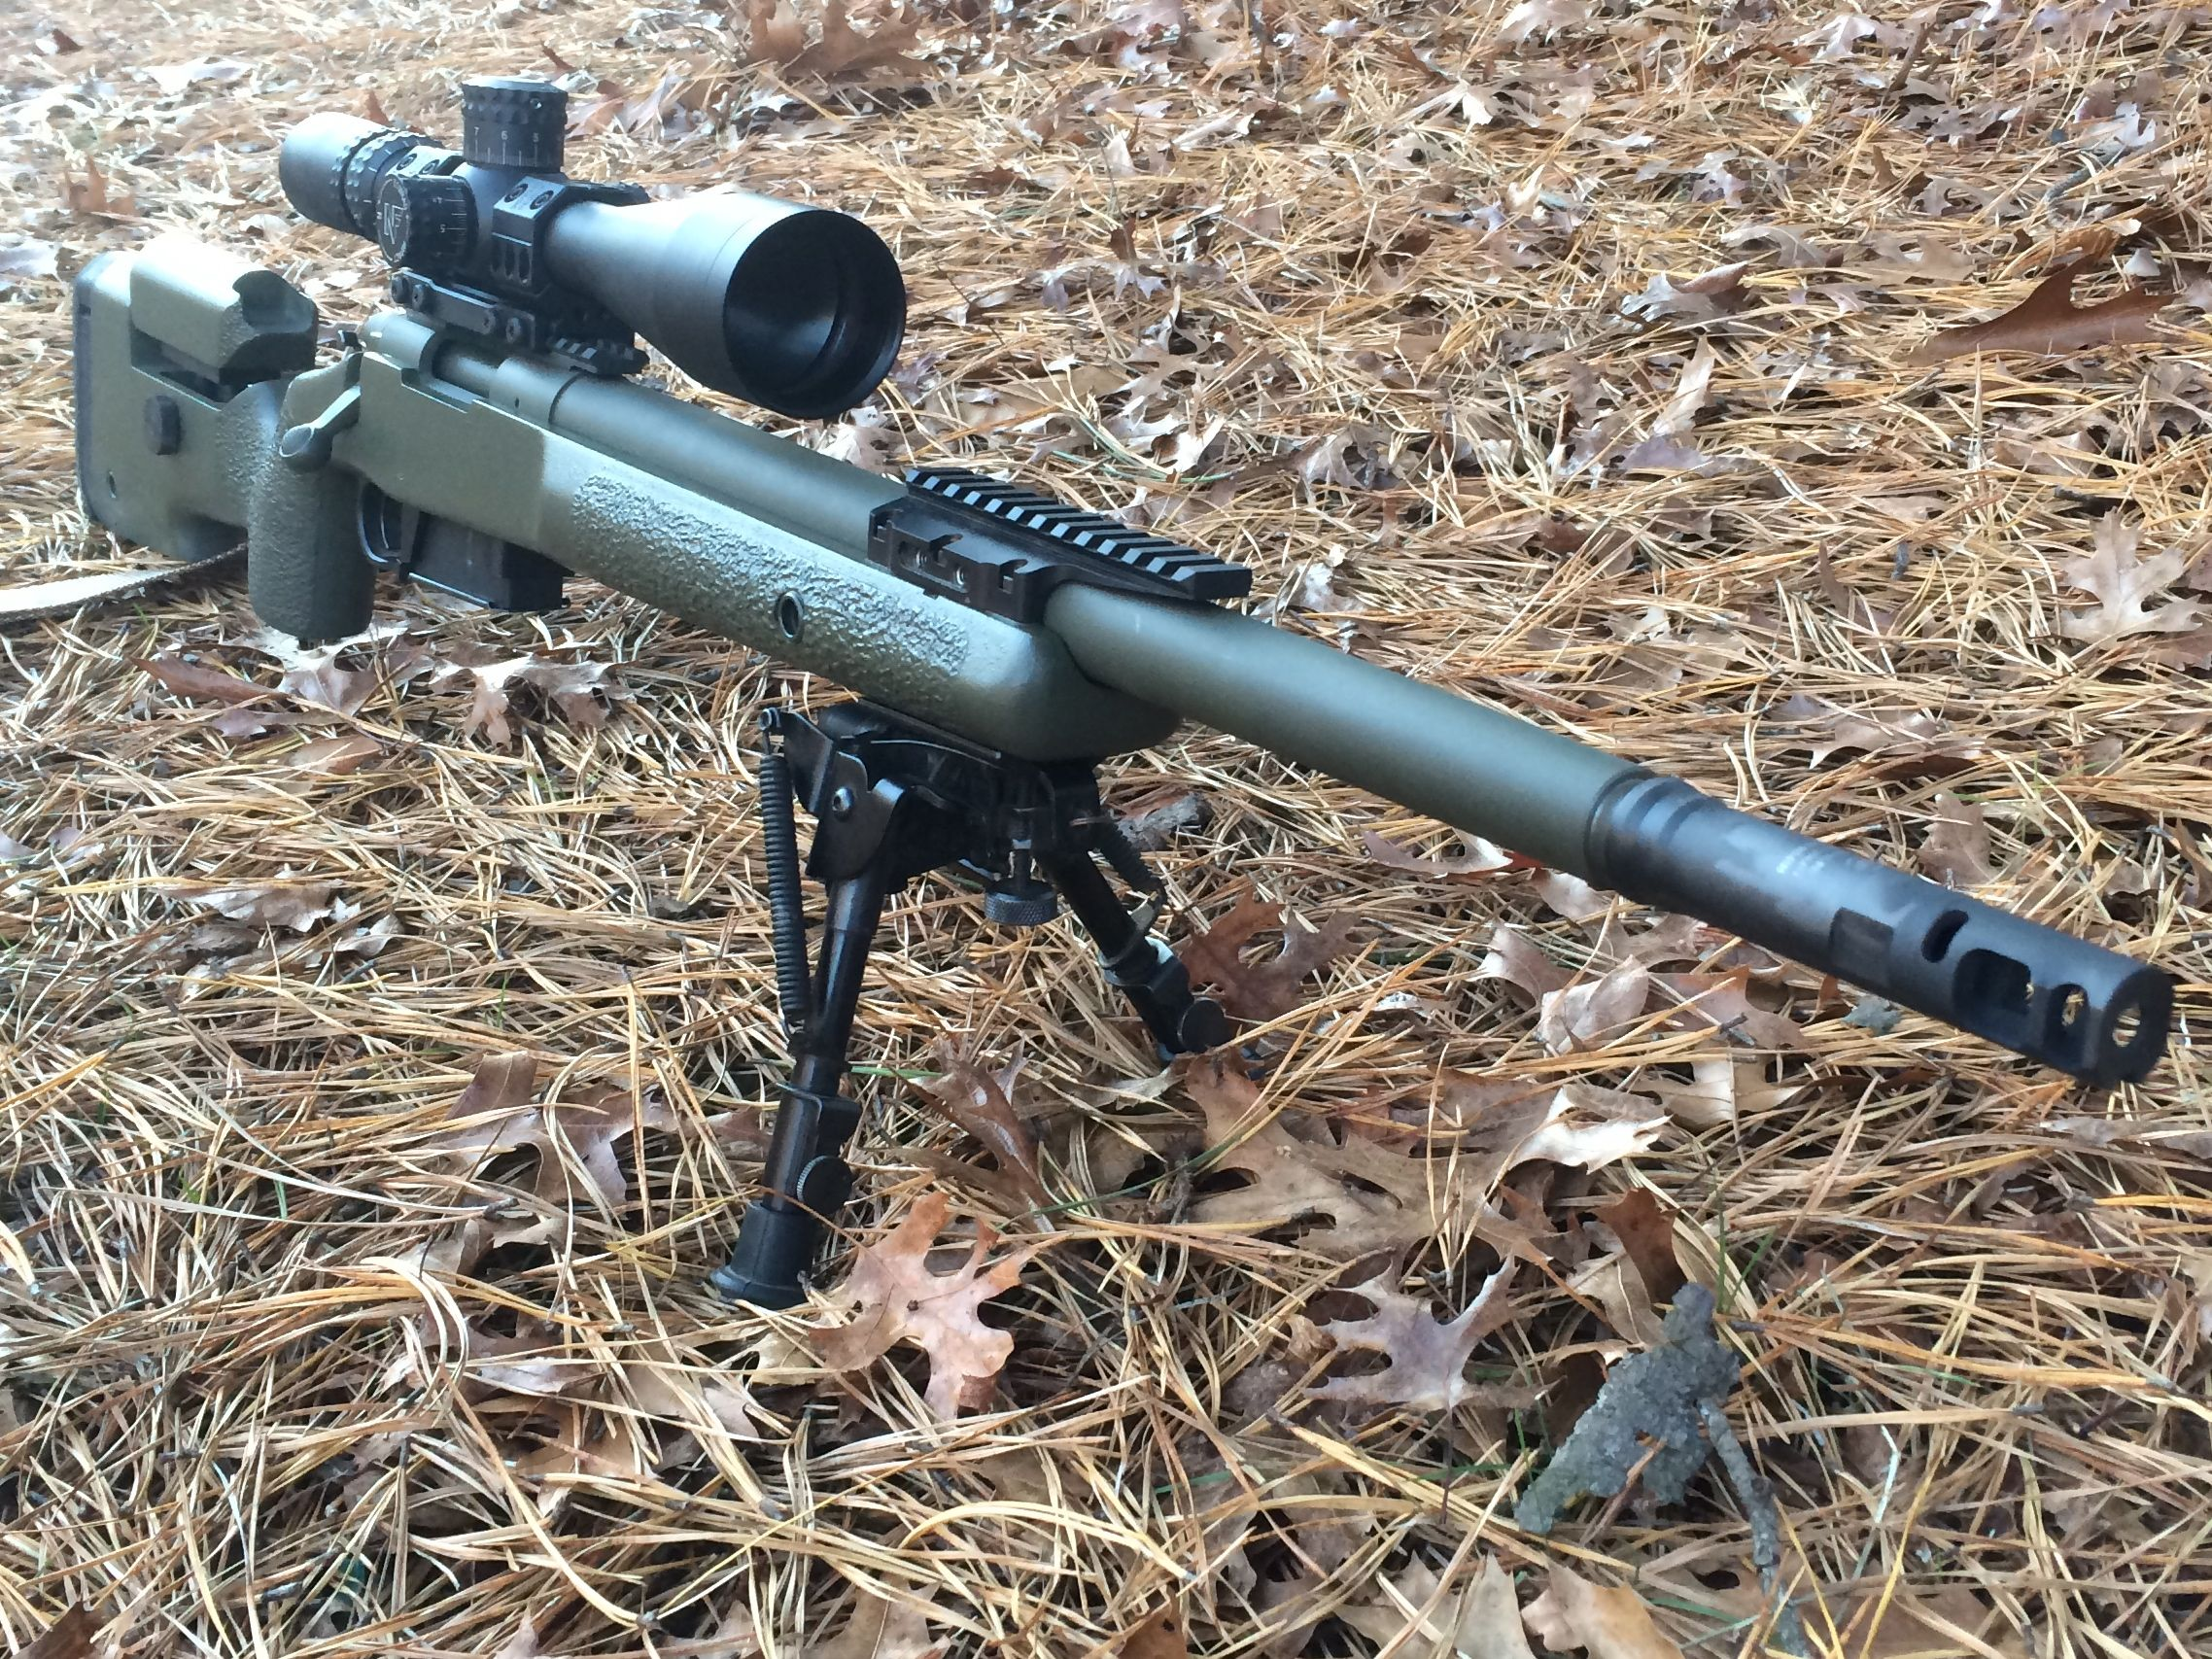 308 Winchester Load Development: 175-grain Sierra Matchking and Varget